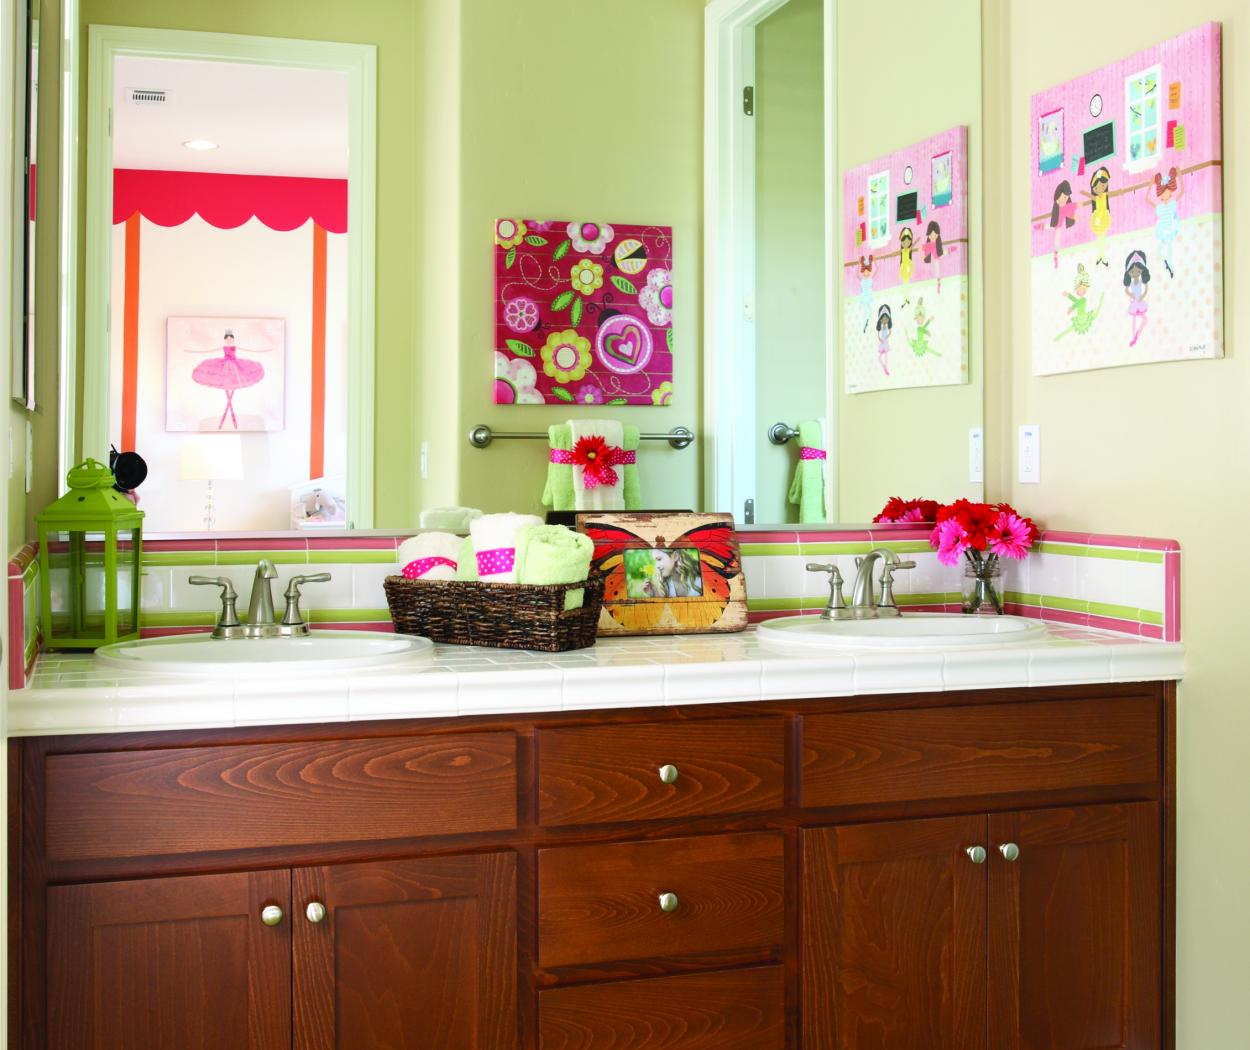 Little Girls Stained Bathroom Vanity with Chrome Hardware and a White Counter Top